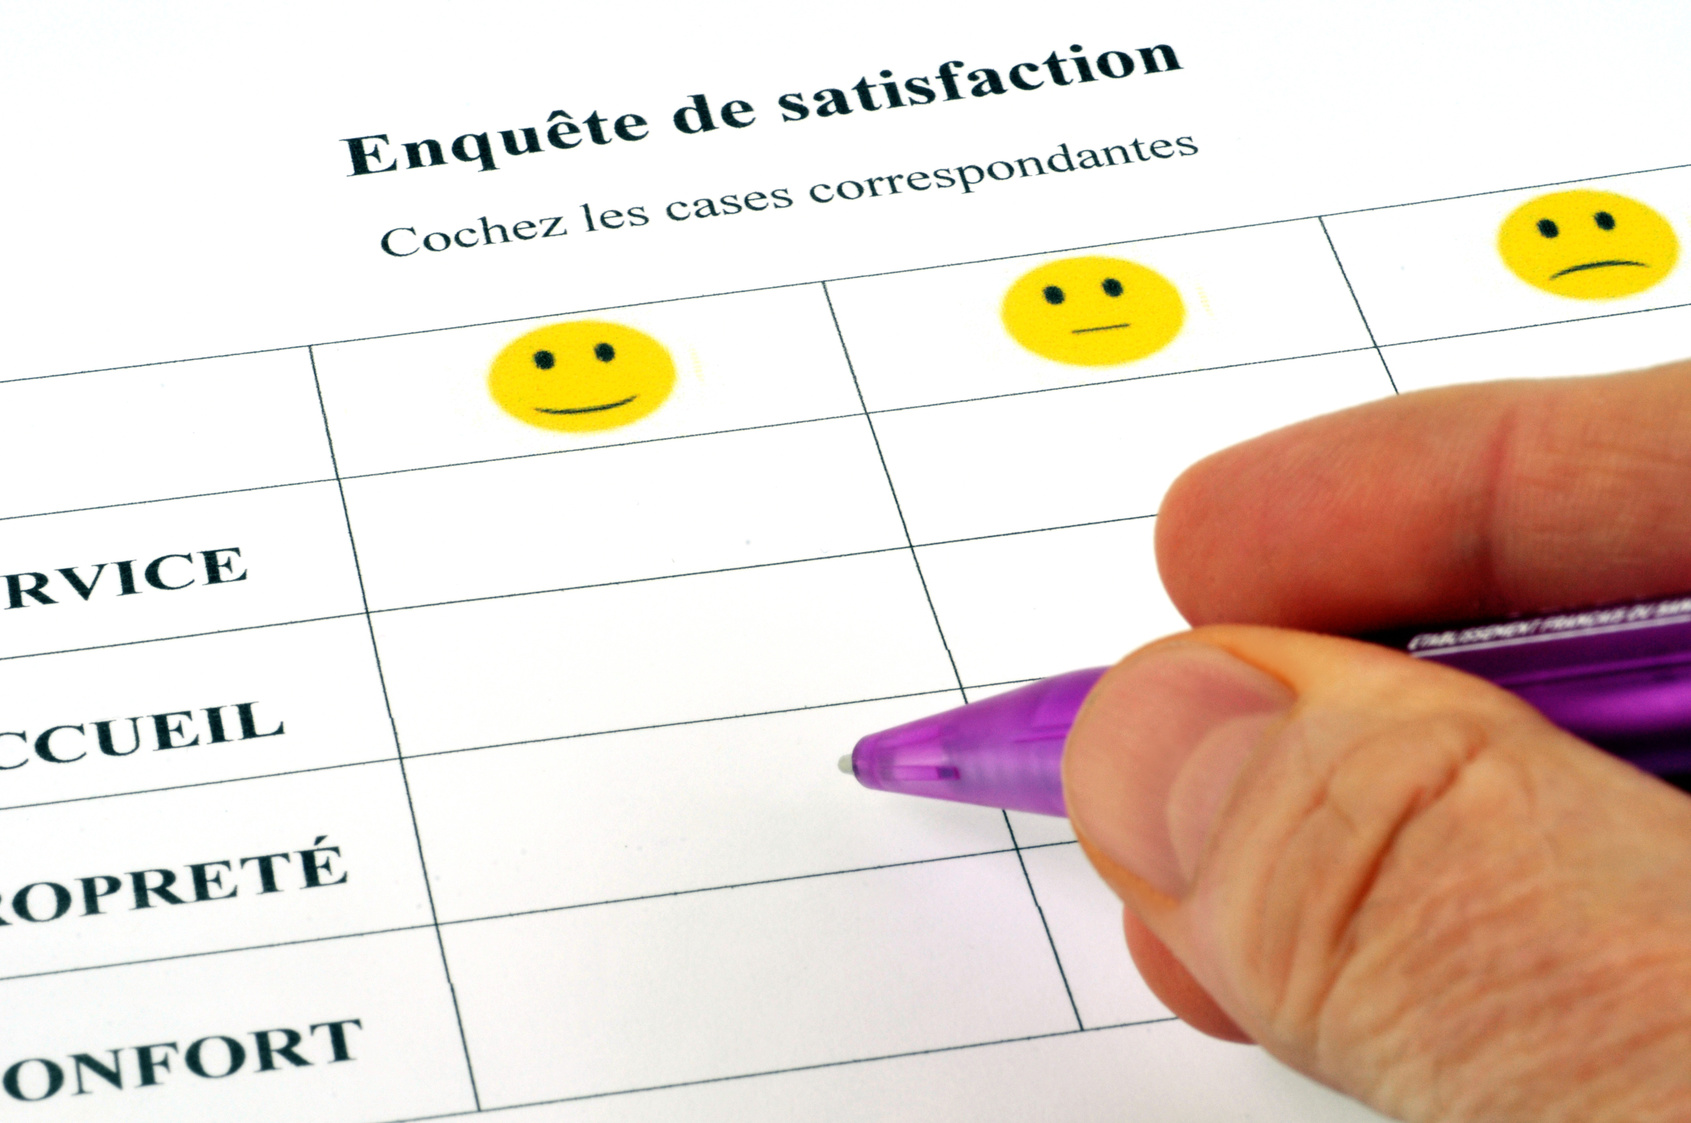 enquete de satisfaction exemple ui78